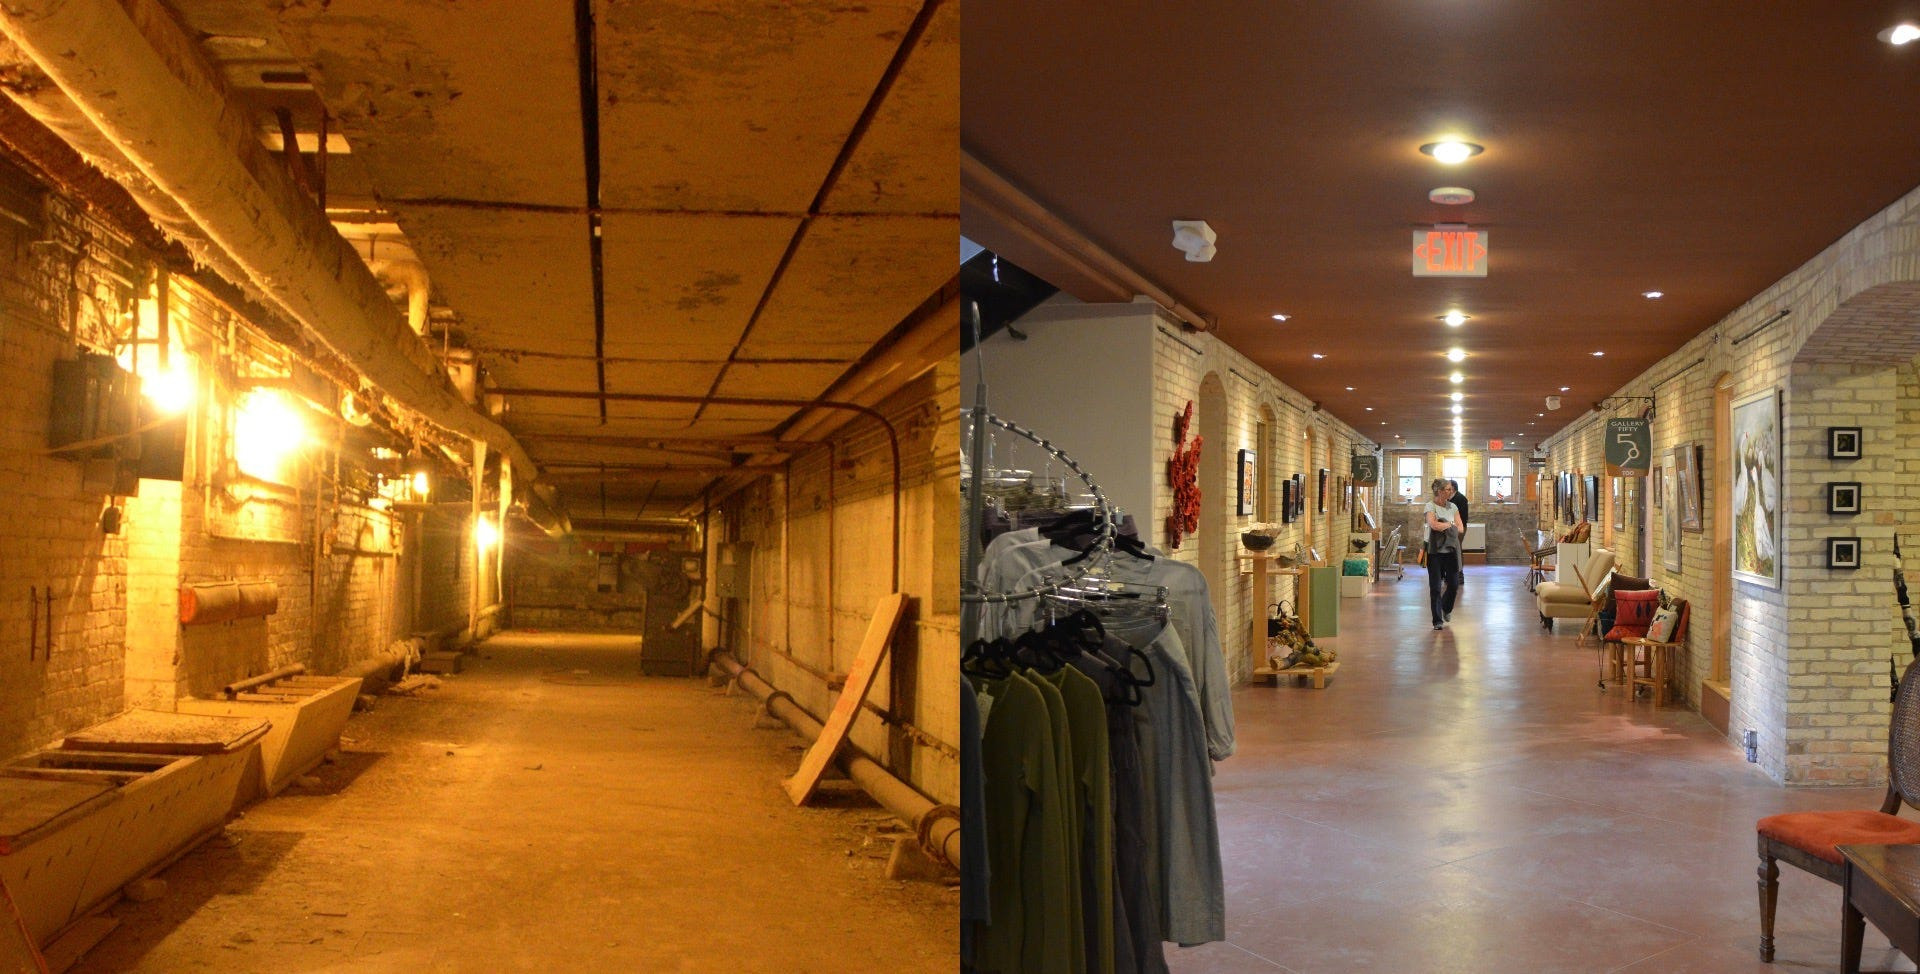 This before-and-after collage shows a renovated hallway in the former Traverse City State Hospital. Building 50 was vacant for decades before The Minervini Group began renovations to create The Village at Grand Traverse Commons. The hallway now holds a variety of shops.